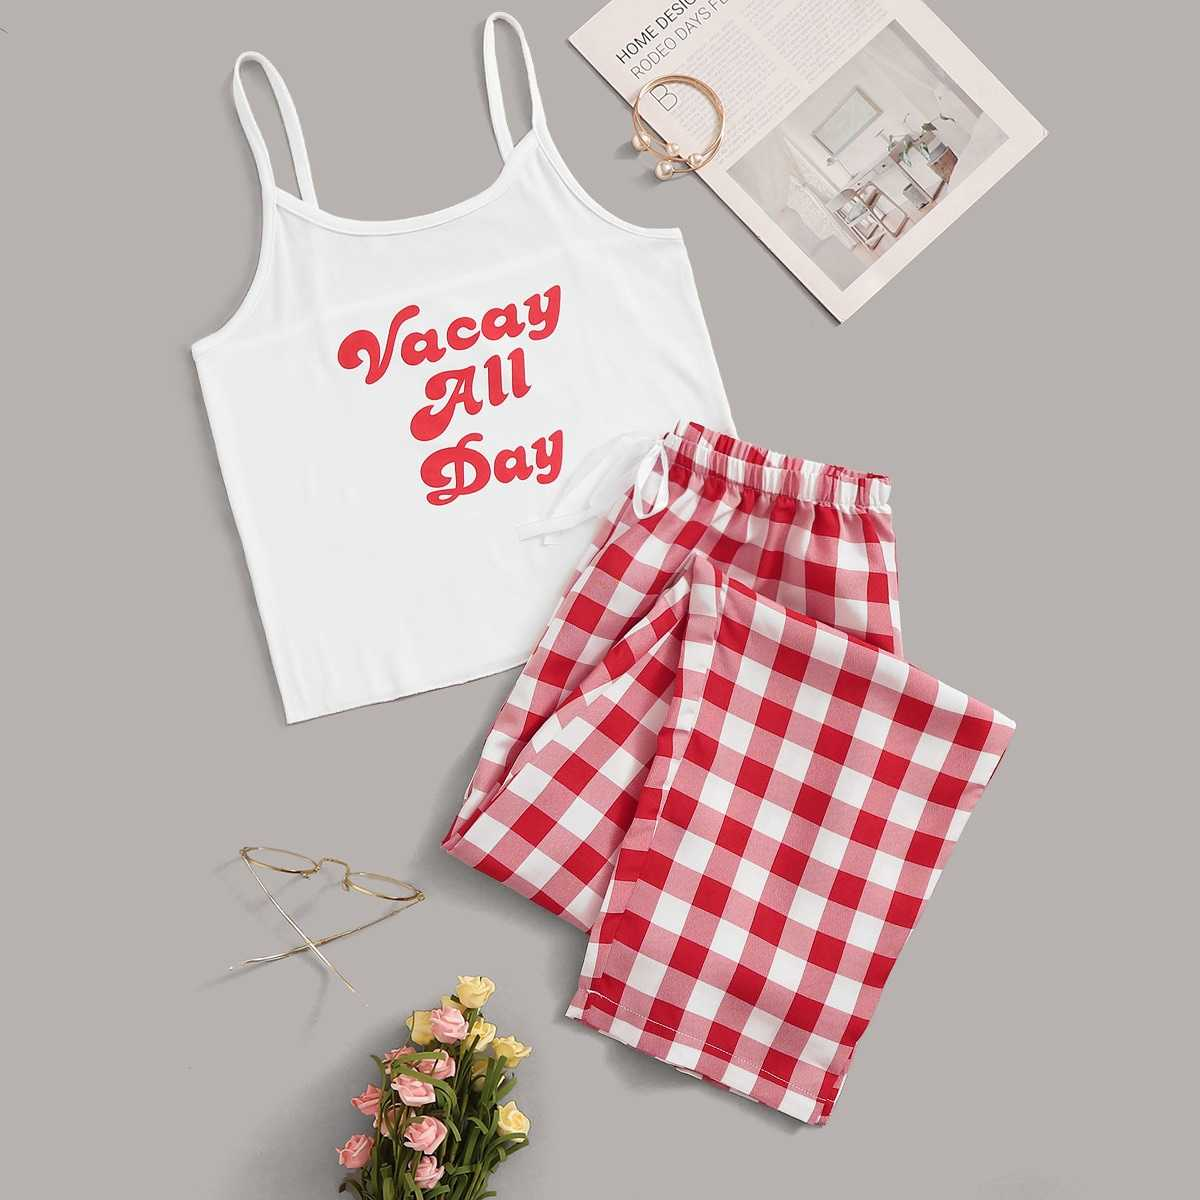 Letter Print Plaid Cami Pajama Set in Multicolor by ROMWE on GOOFASH